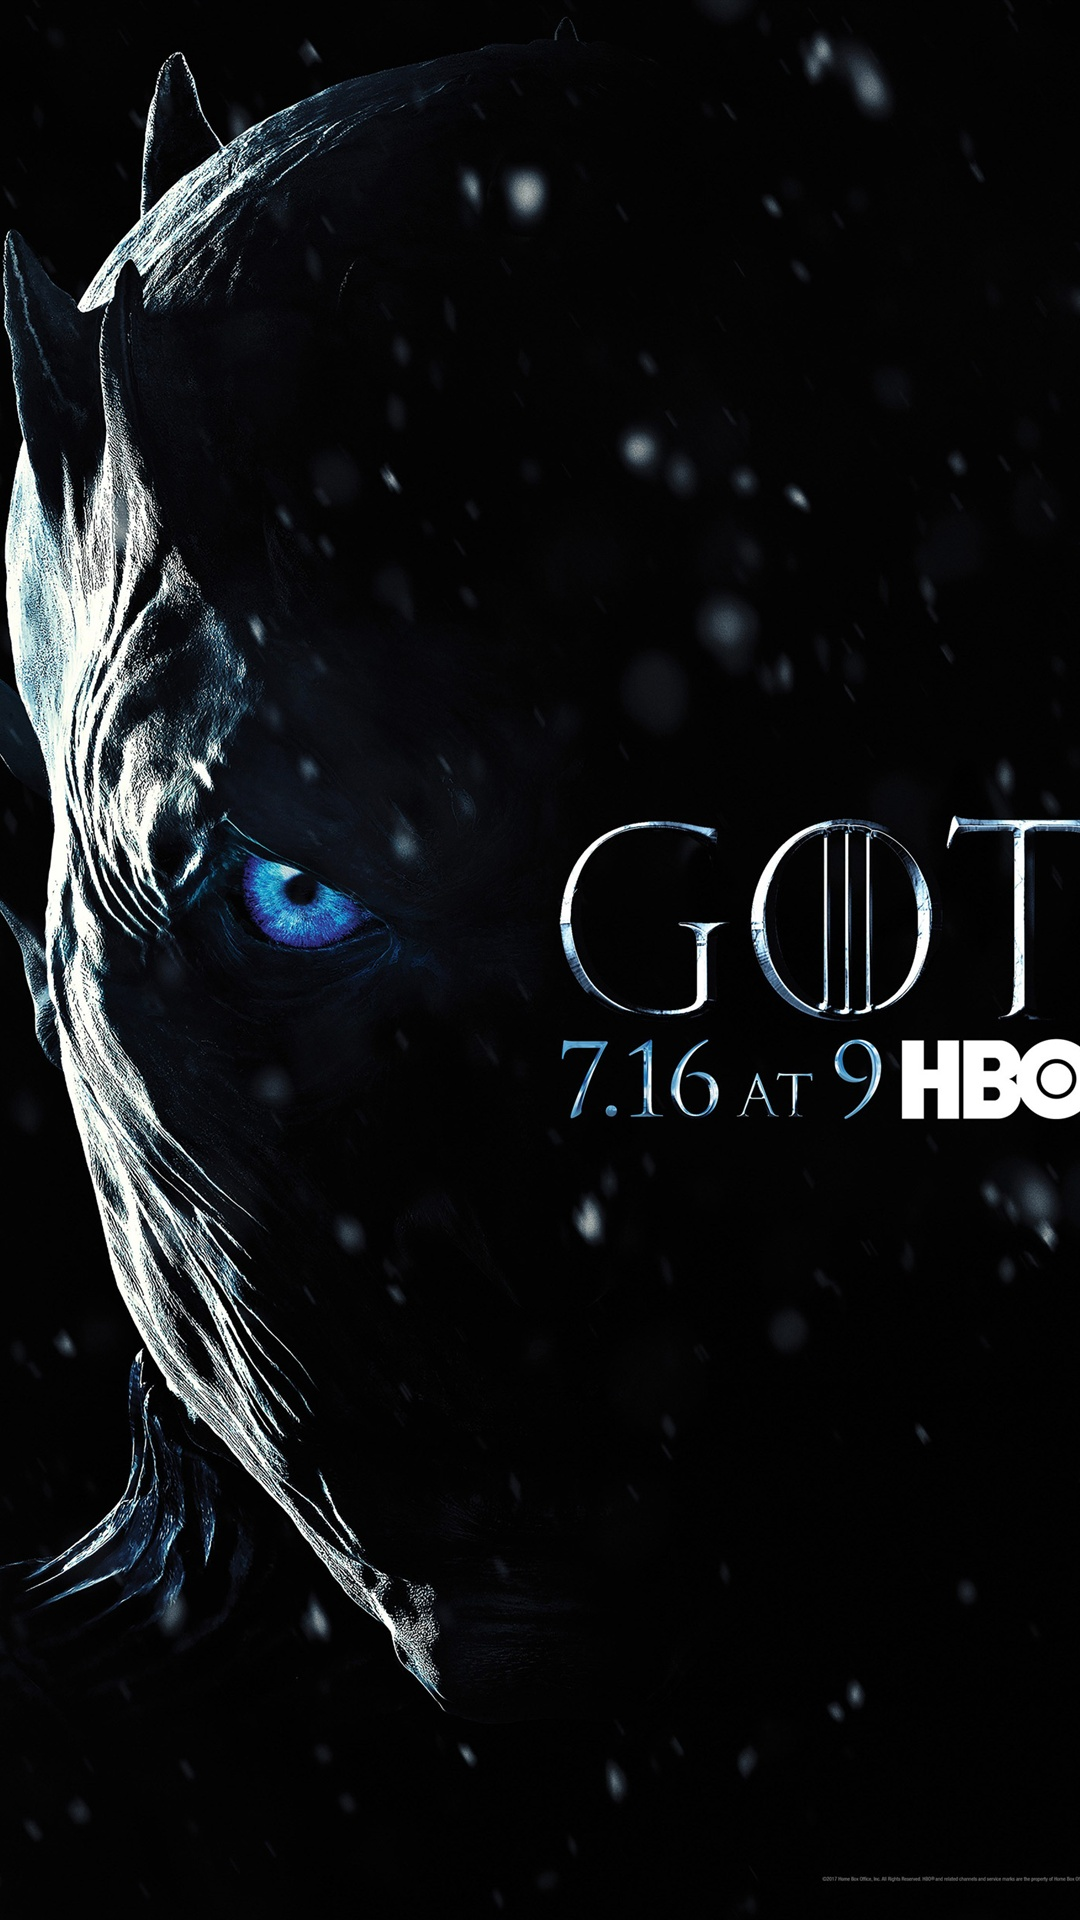 High Resolution Game Of Thrones Wallpaper Iphone - HD Wallpaper